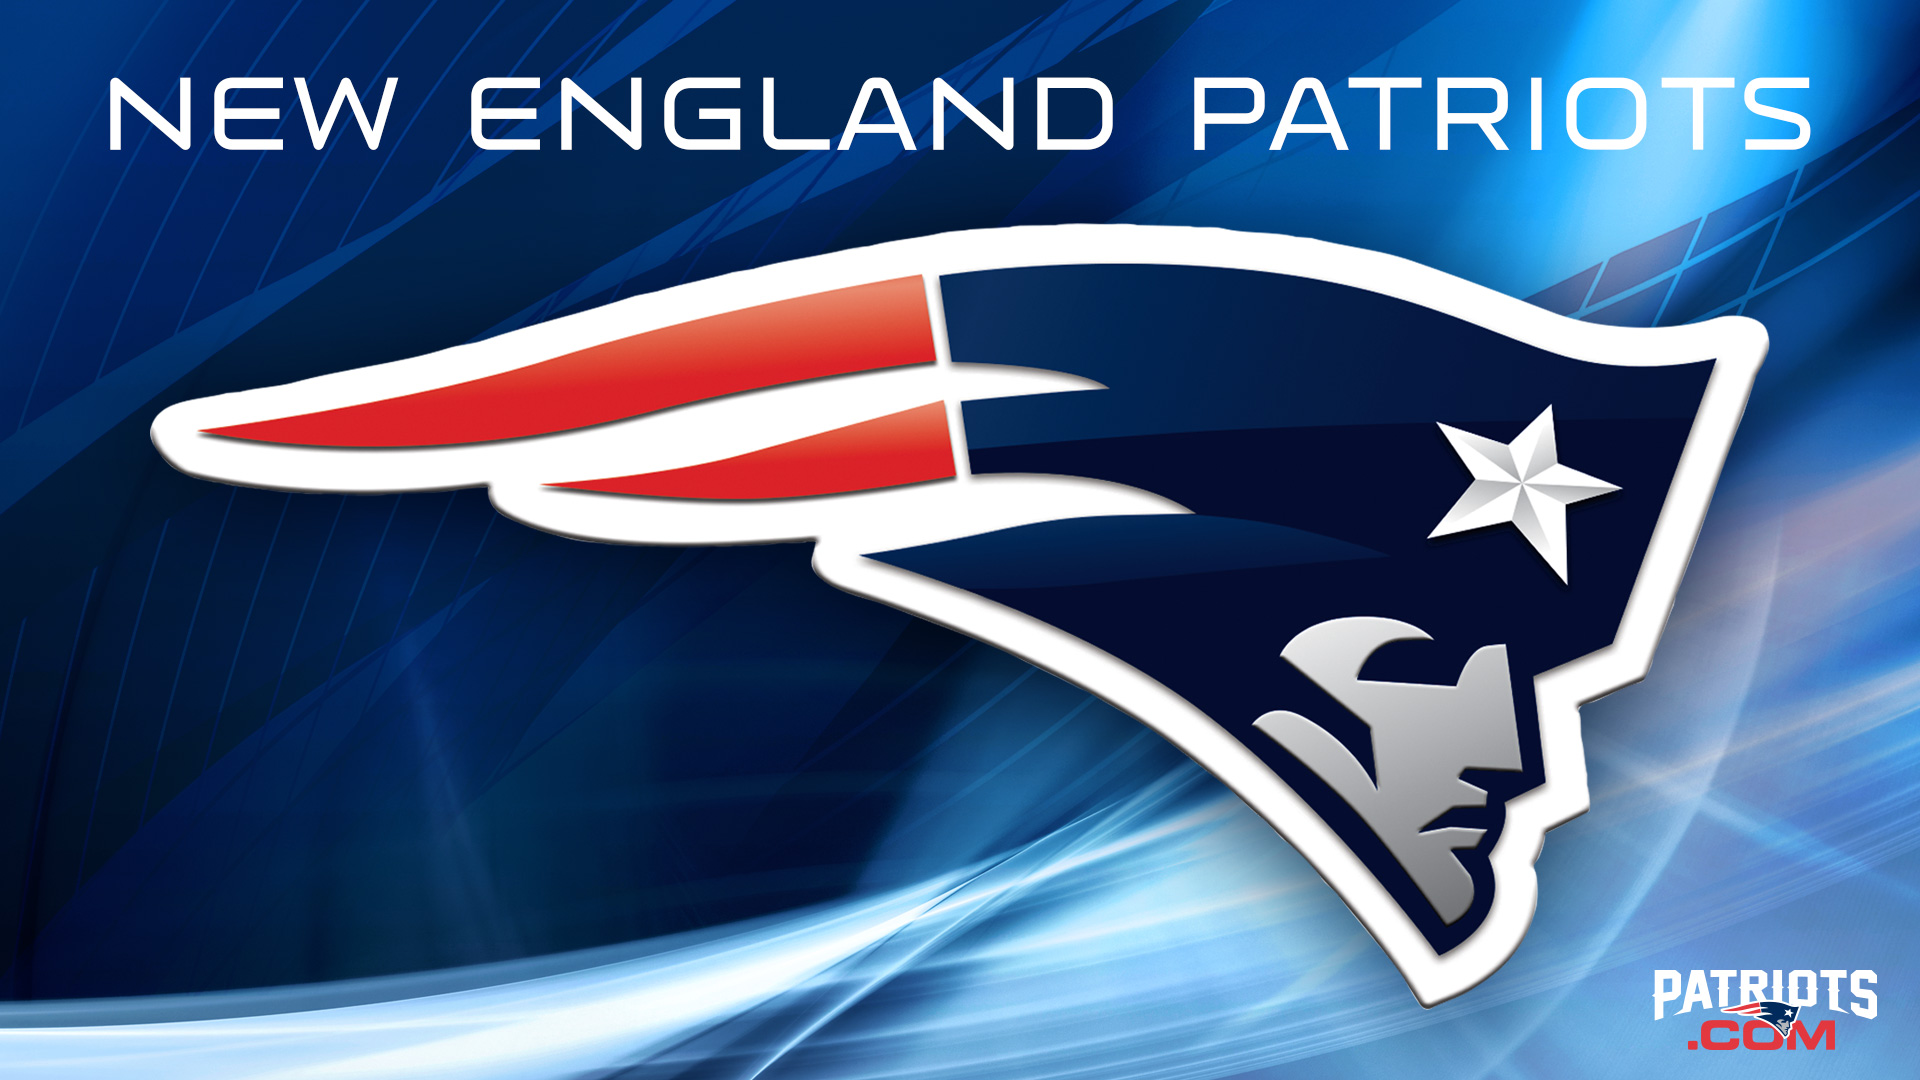 Weed 3d Live Wallpaper Download New England Patriots Live Wallpaper Gallery